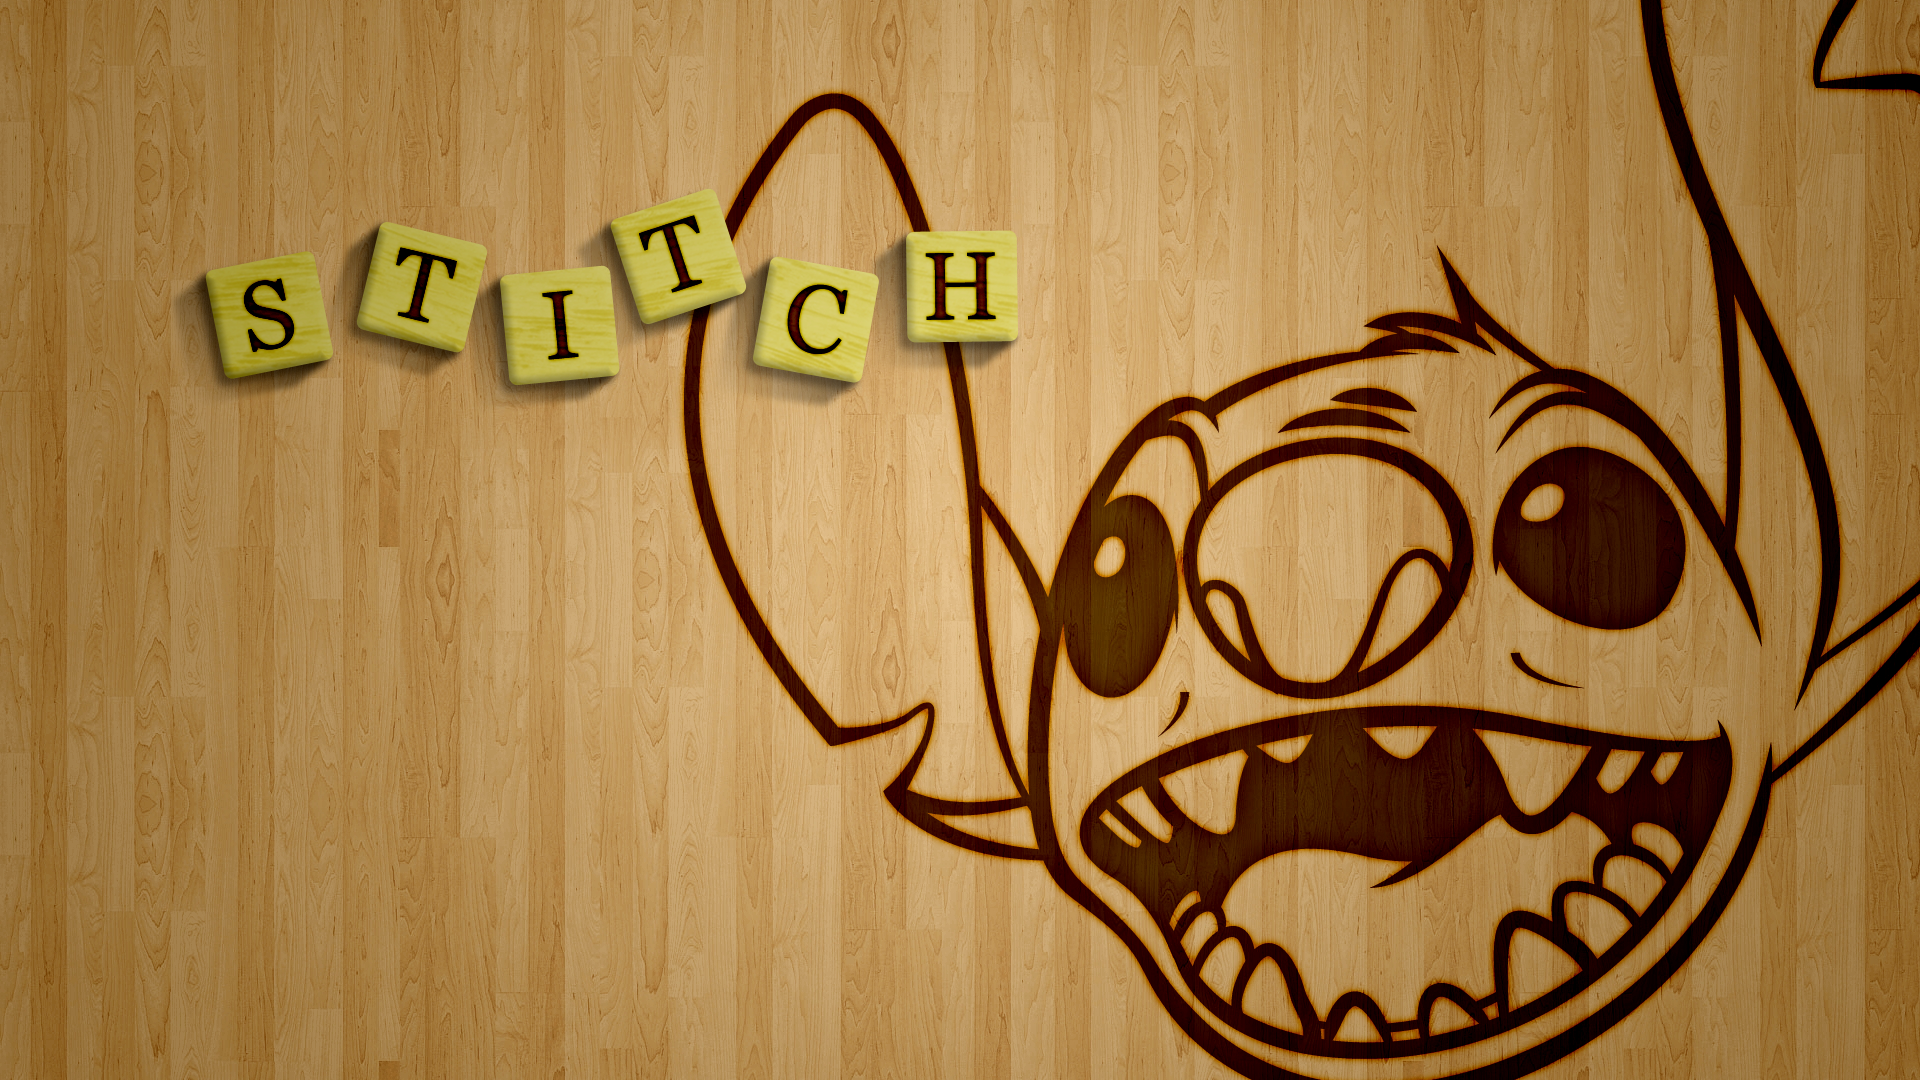 Wallpaper Stitch (97 Wallpapers) HD Wallpapers (With